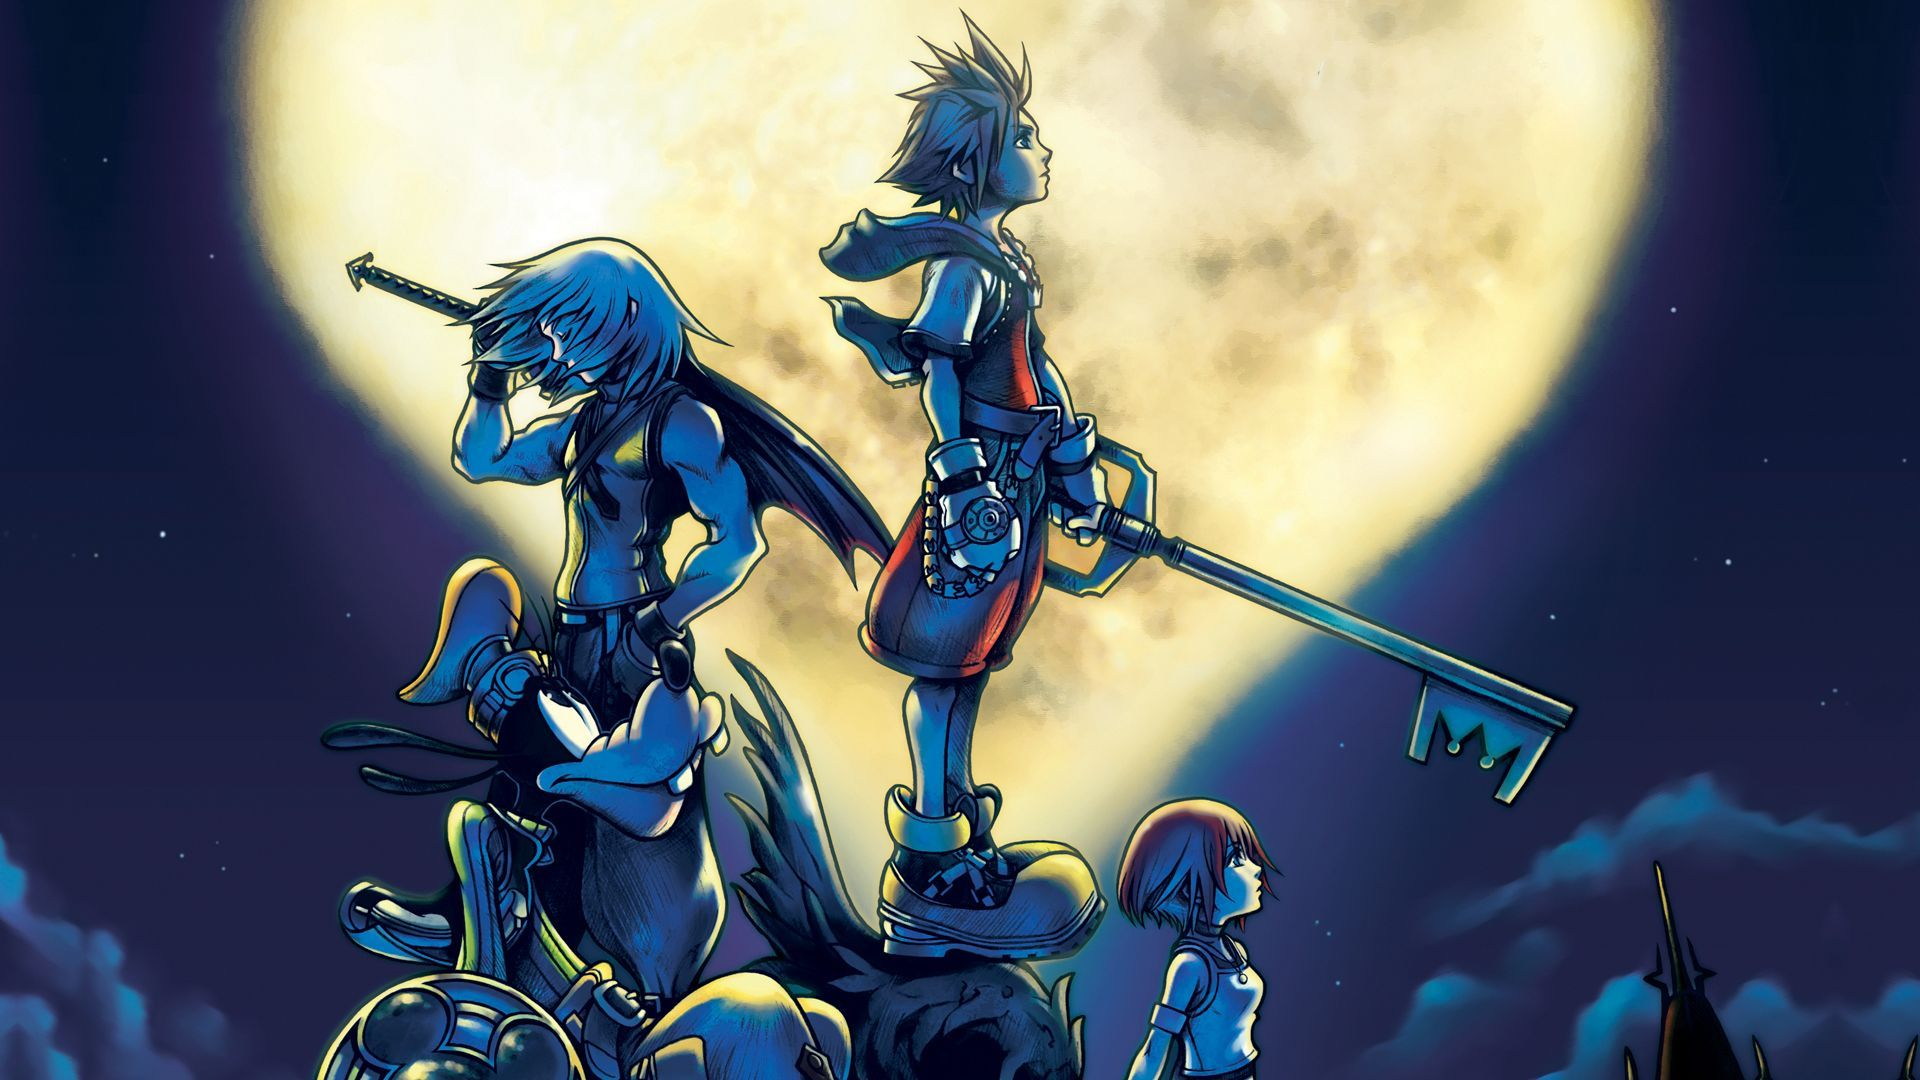 Kingdom Hearts wallpaper 18077 1920x1080